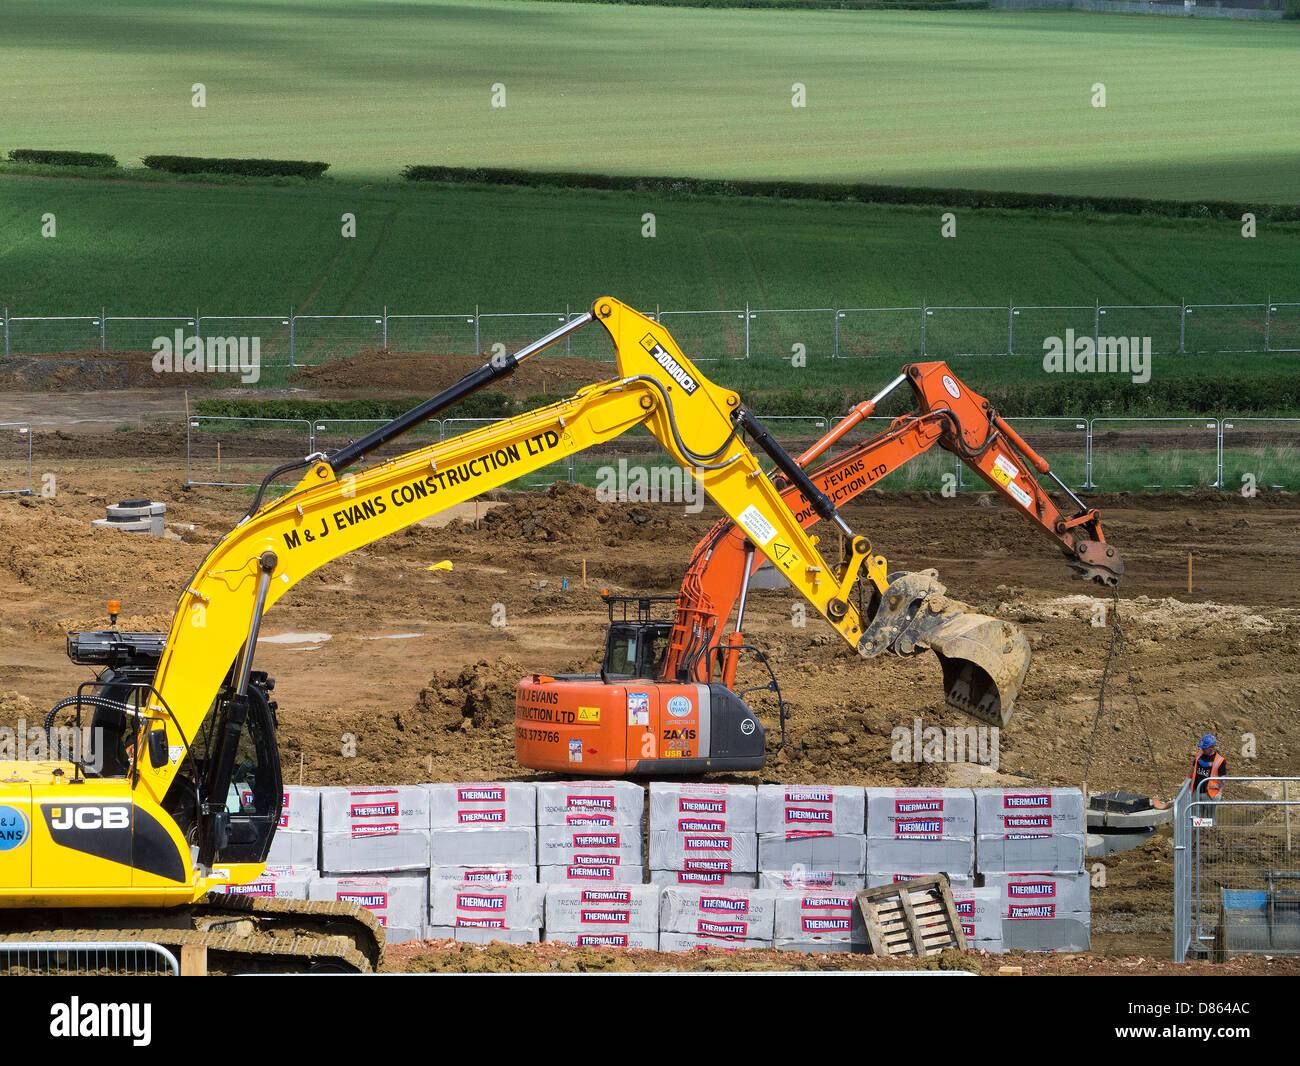 Heavy earth moving machinery preparing rural land for housing development, Grantham, Lincs - Stock Image